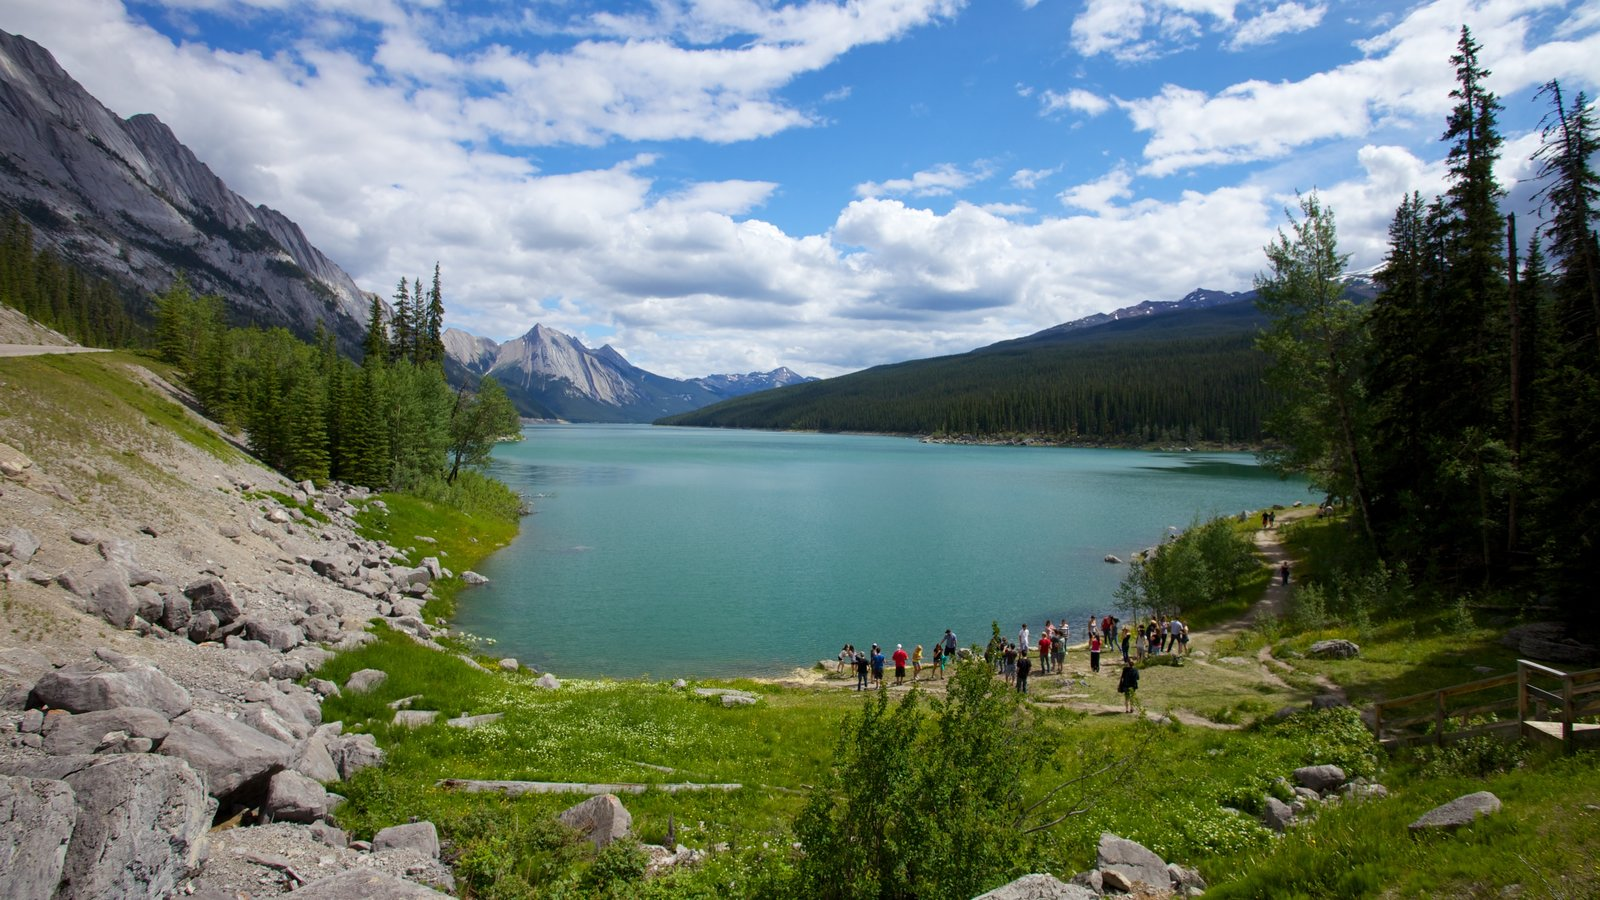 Medicine Lake featuring a lake or waterhole, mountains and landscape views